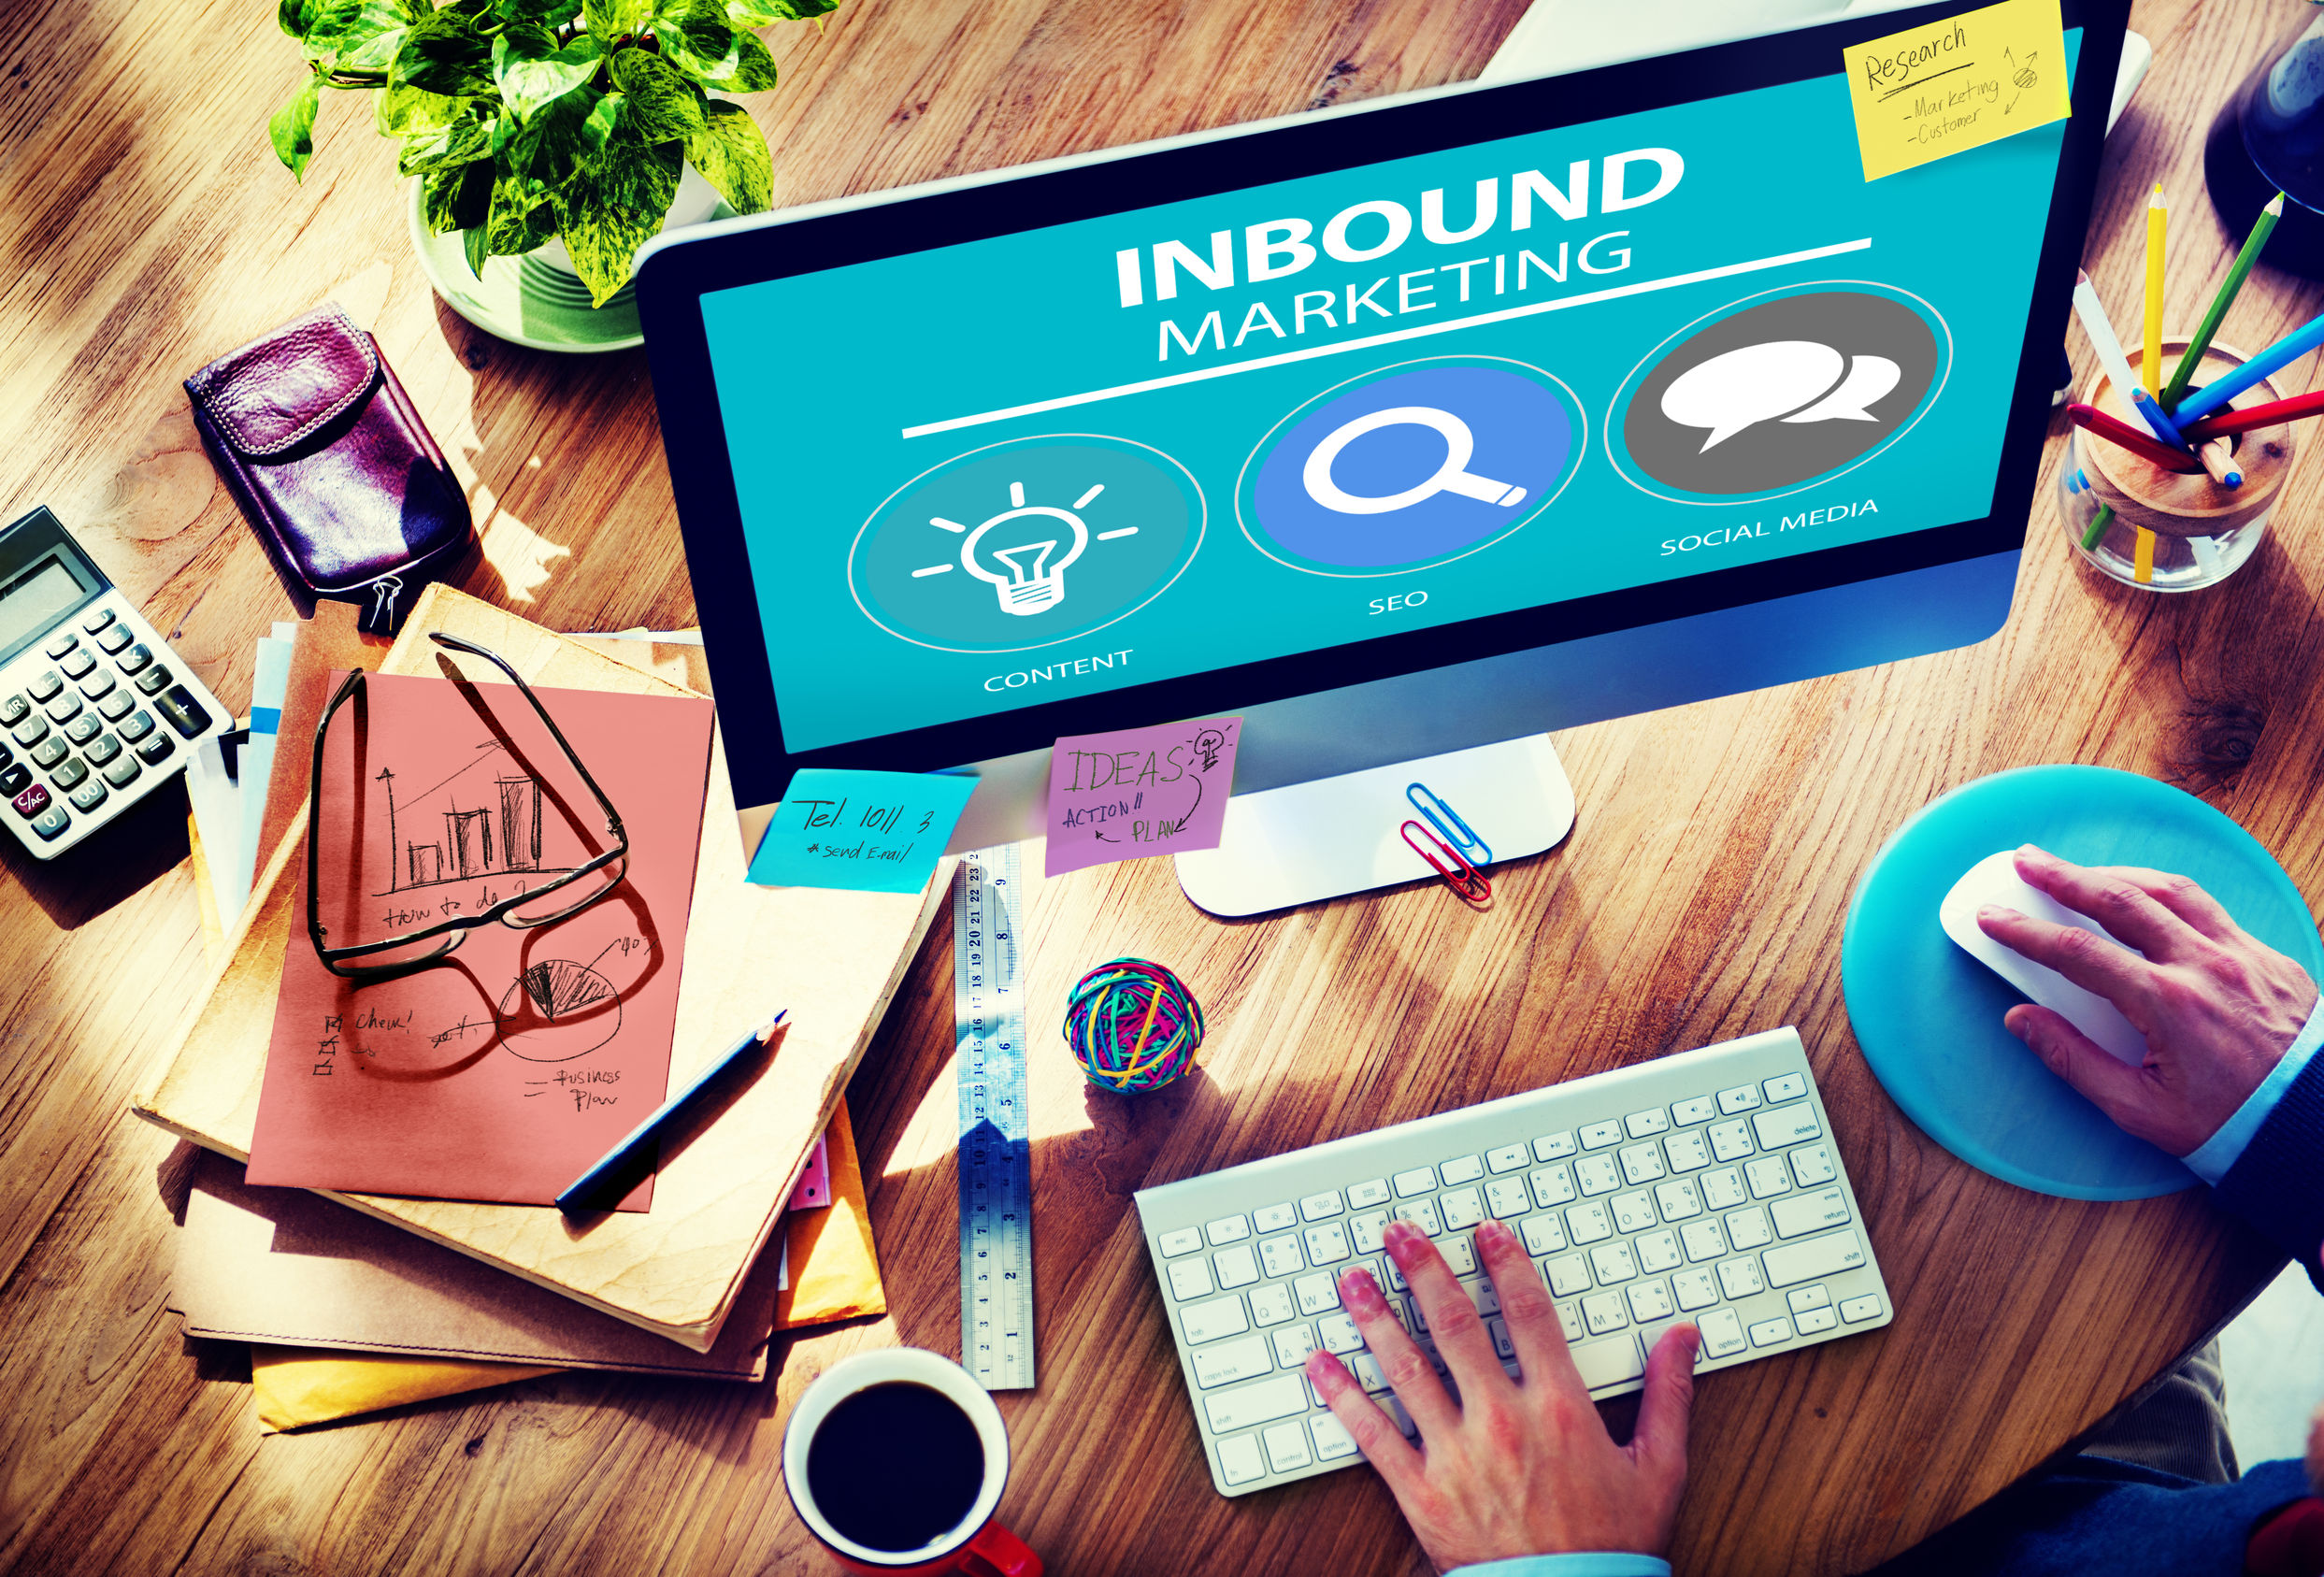 Inbound Marketing Examples to Inspire Your Next Marketing Campaign